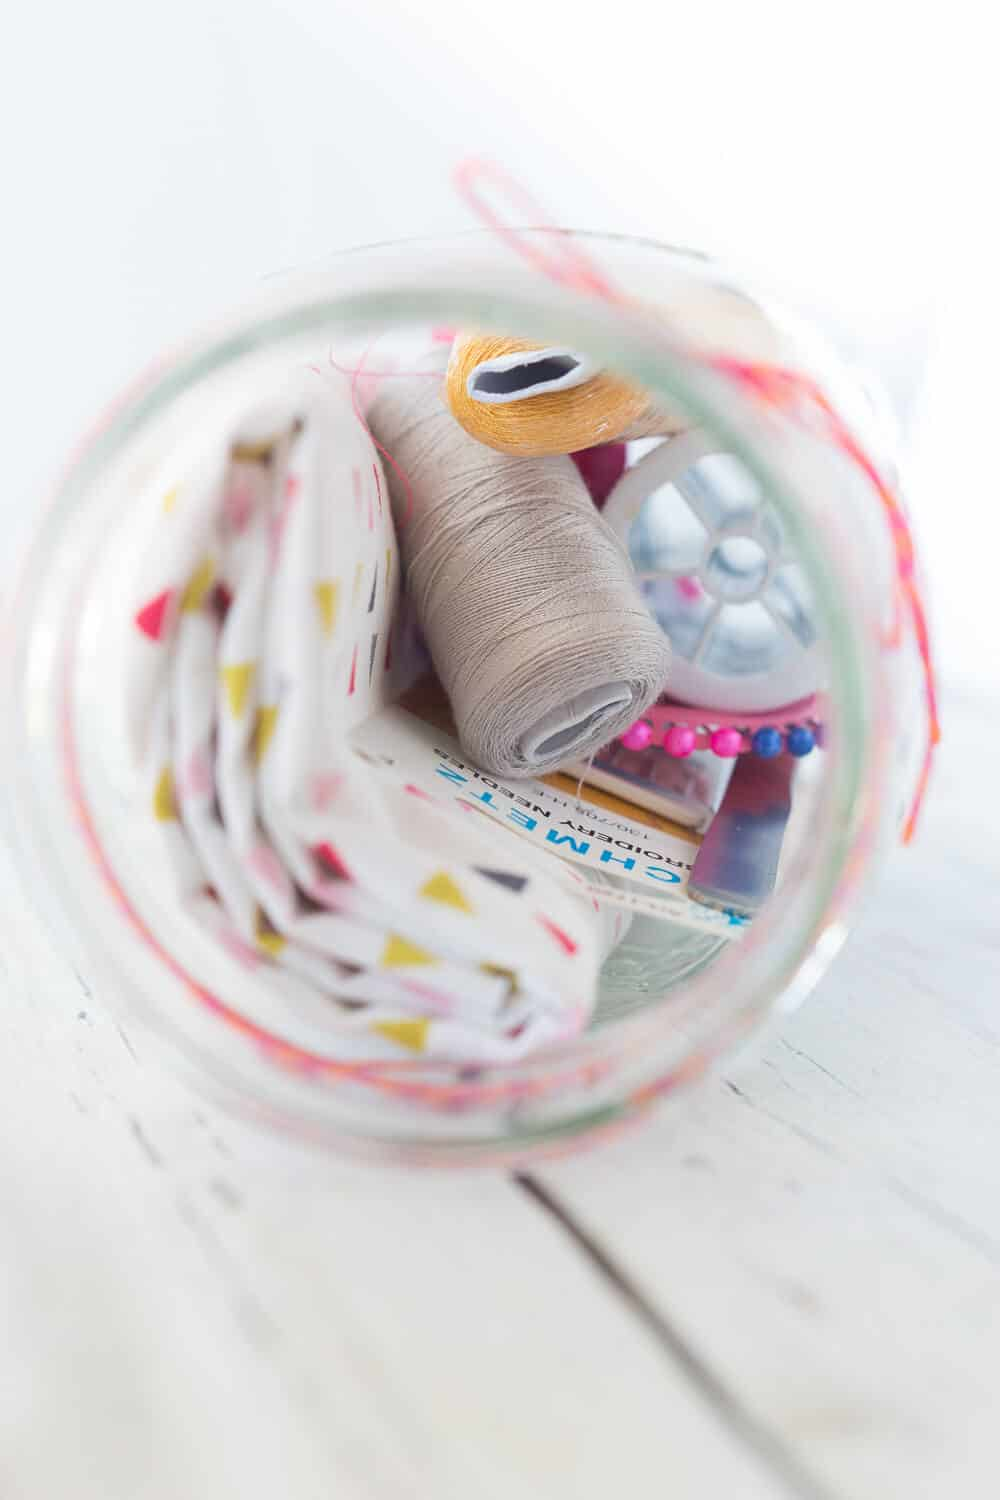 Mason Jar Sewing Kit Gift - this is a perfect gift for the seamstress in your life. Filled with sewing notions, pretty fabric and more!